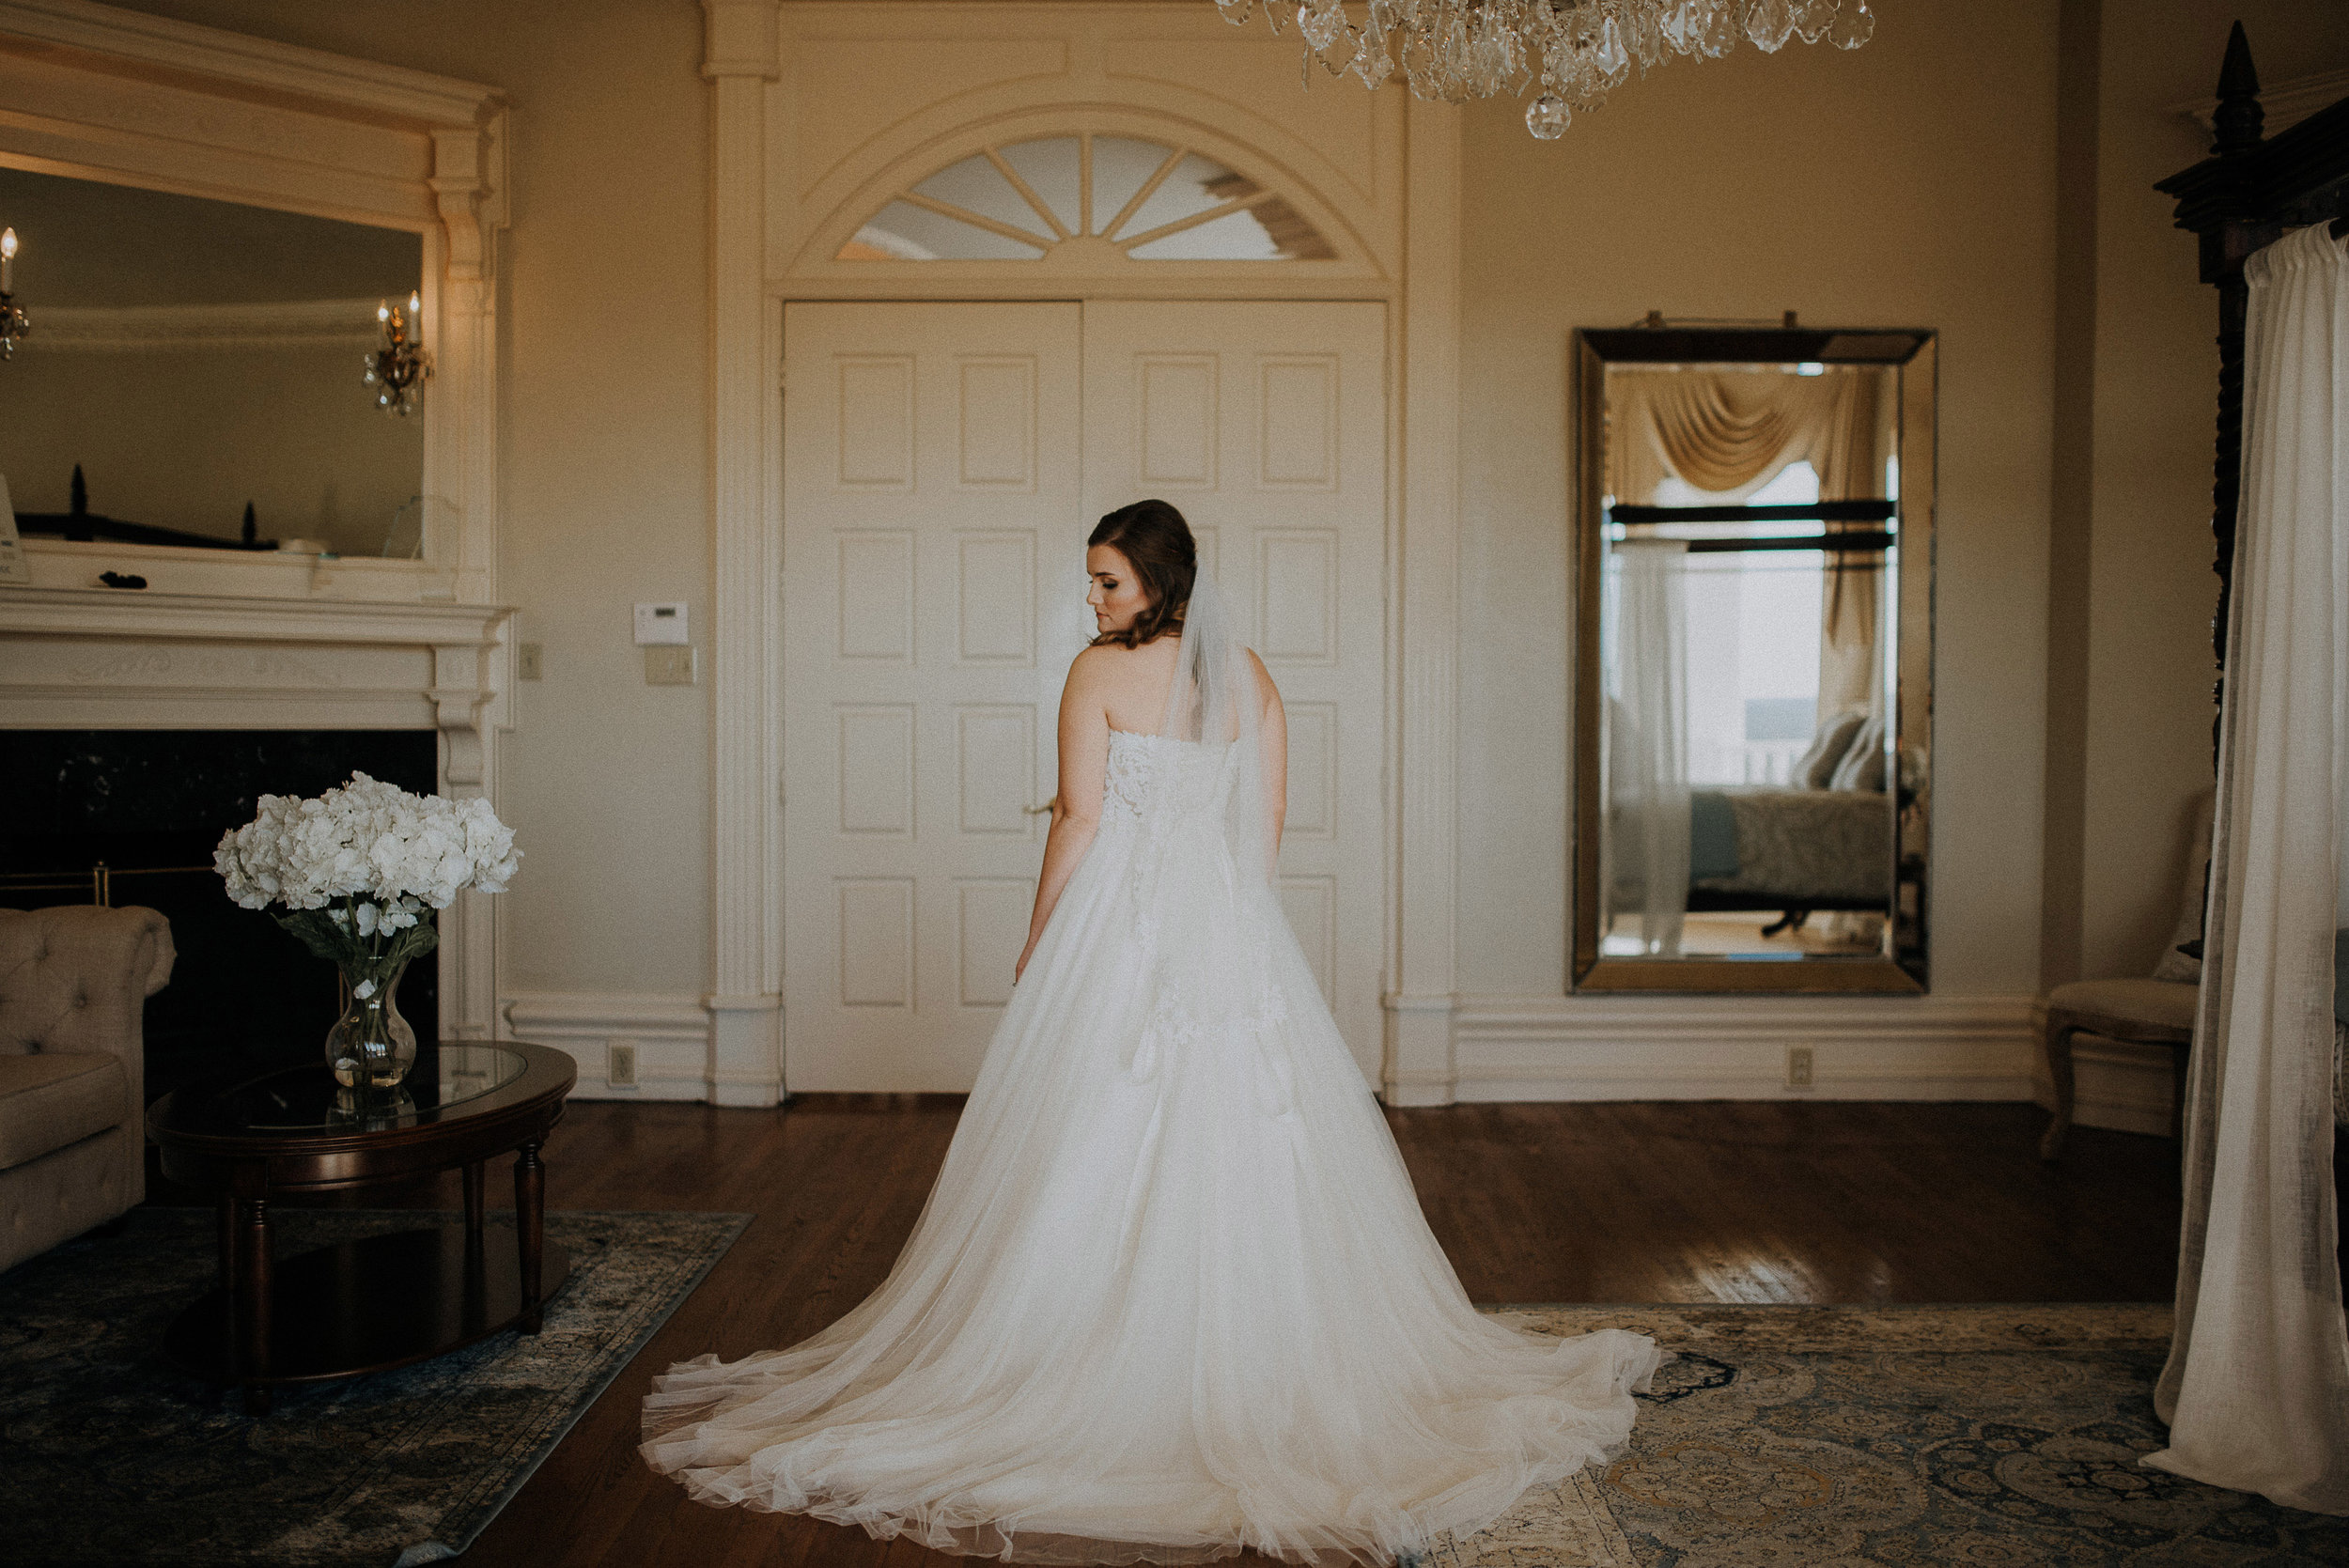 Dallas_Fort_Worth_wedding_Photographer_lone_star_mansion_burleson_texas_37